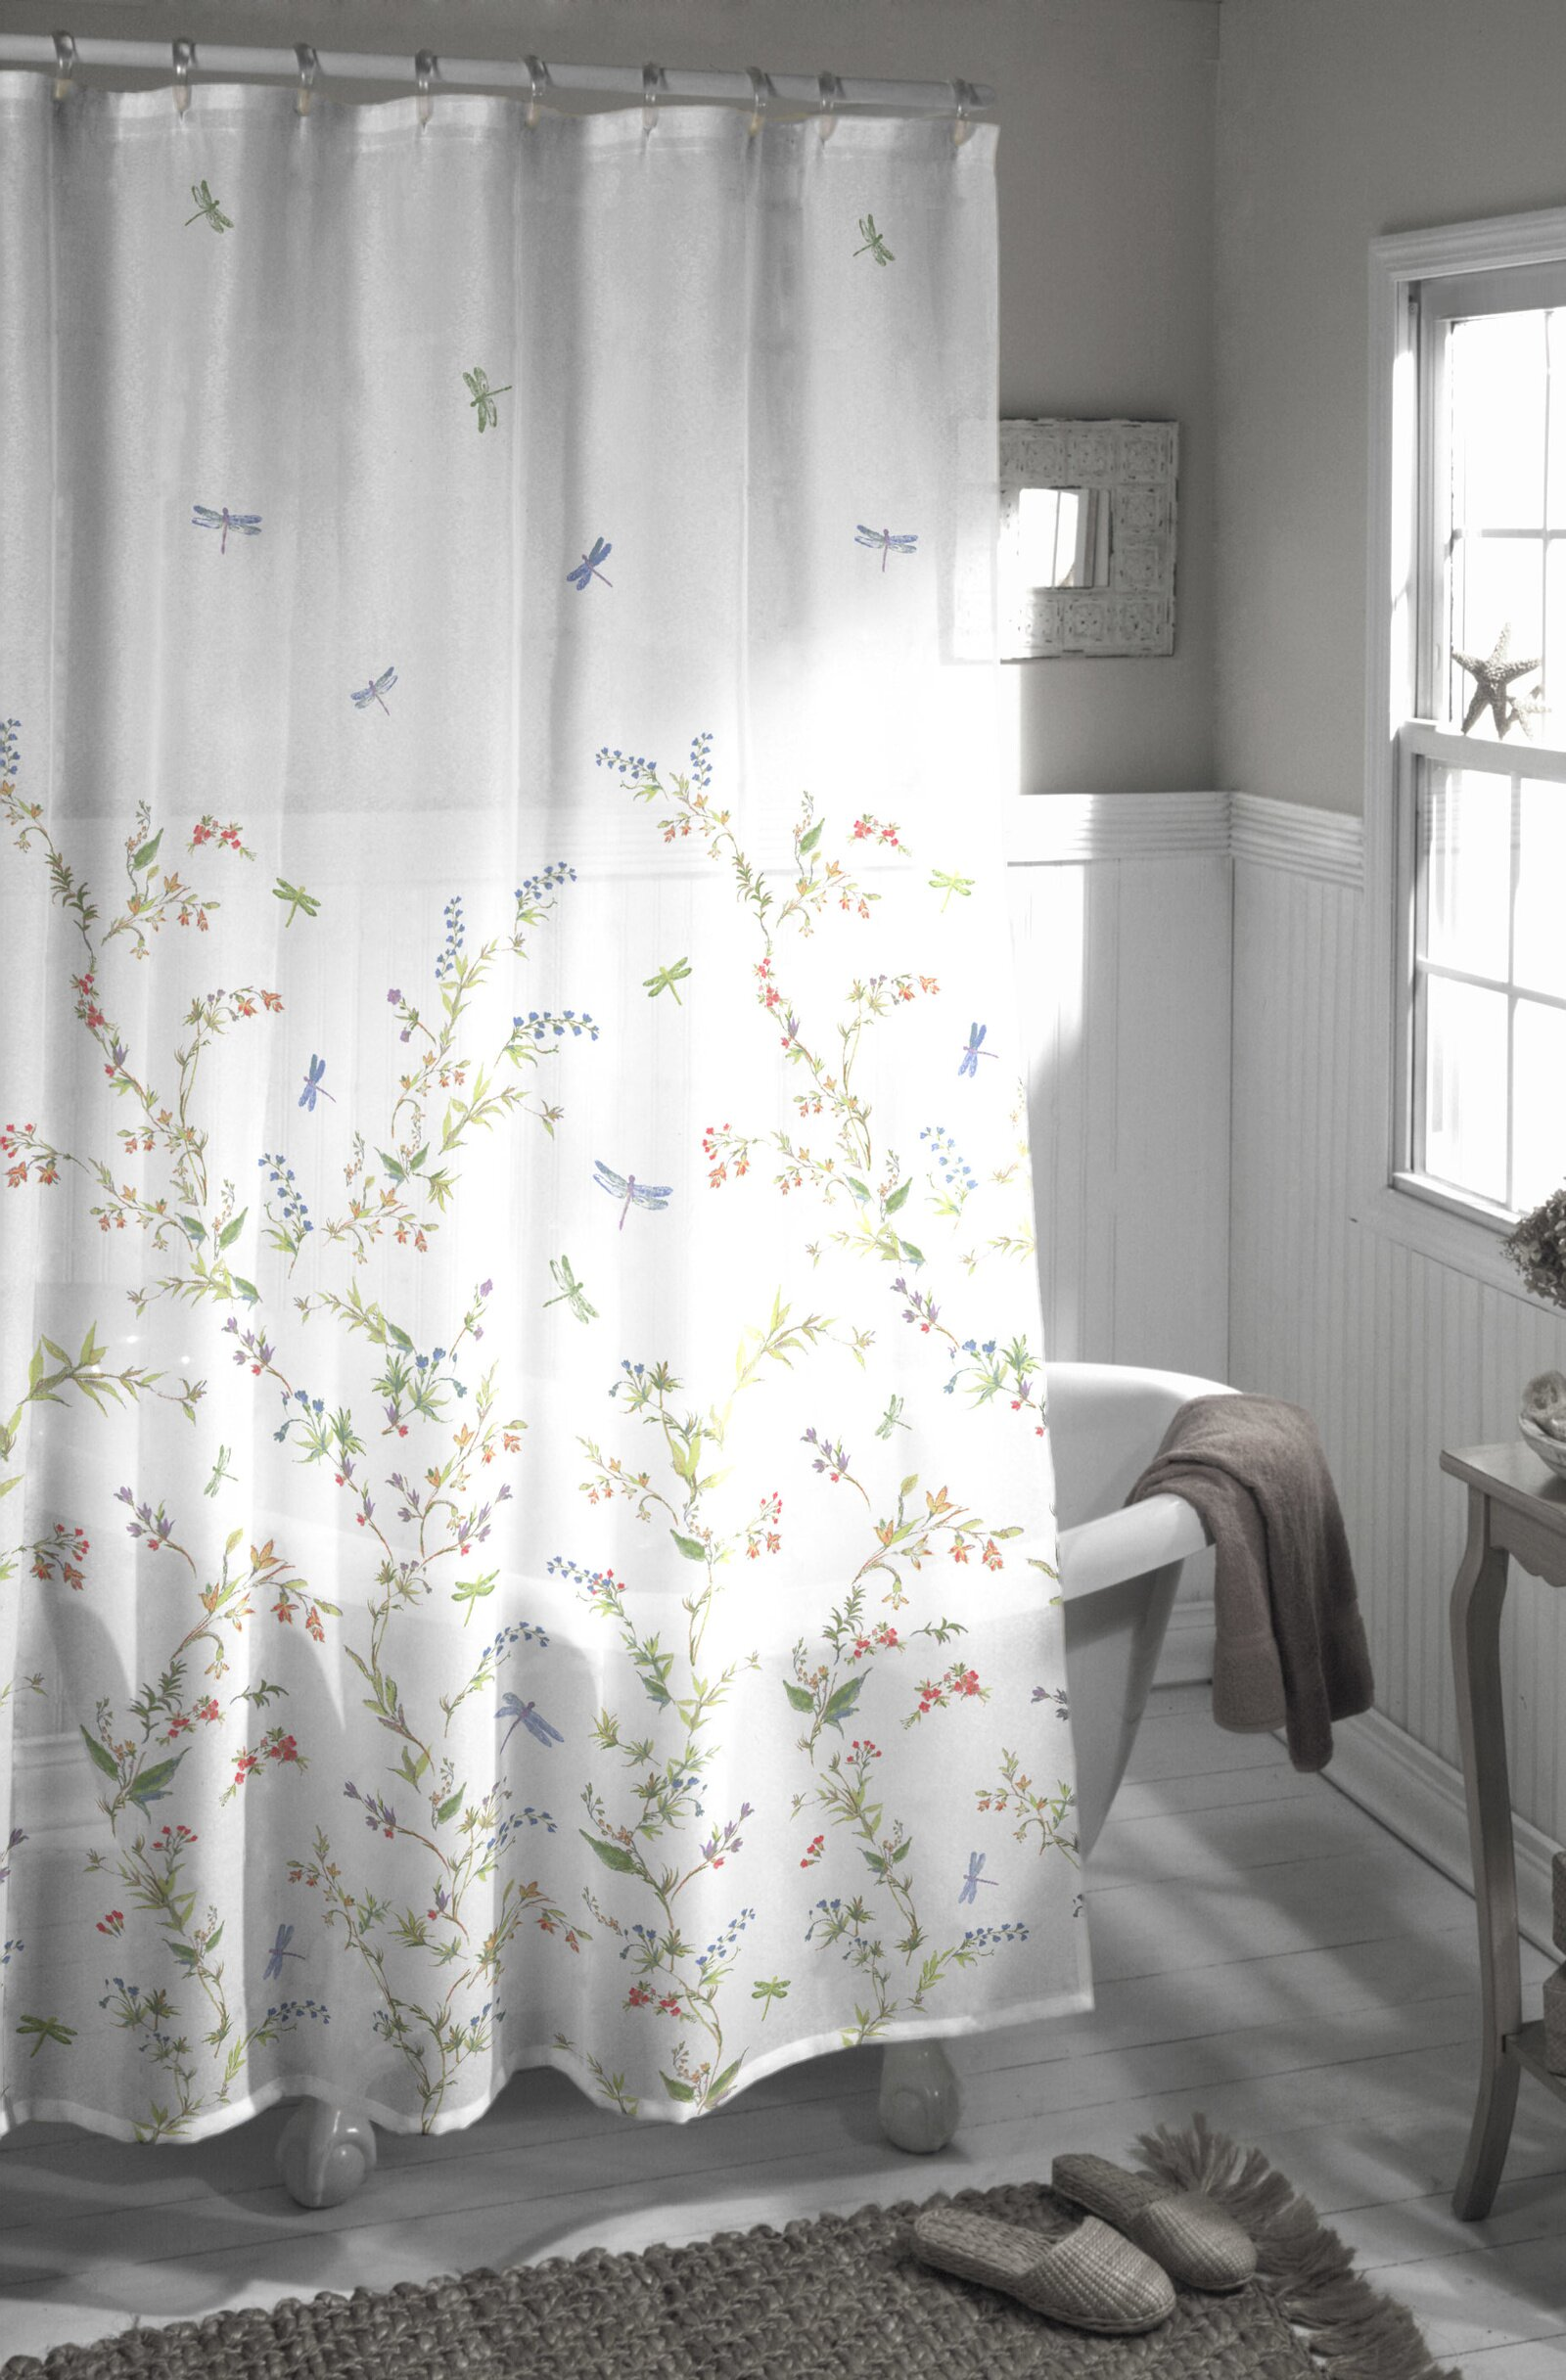 sharpen wid curtains love hei shower bird prd jsp op product nest curtain avanti